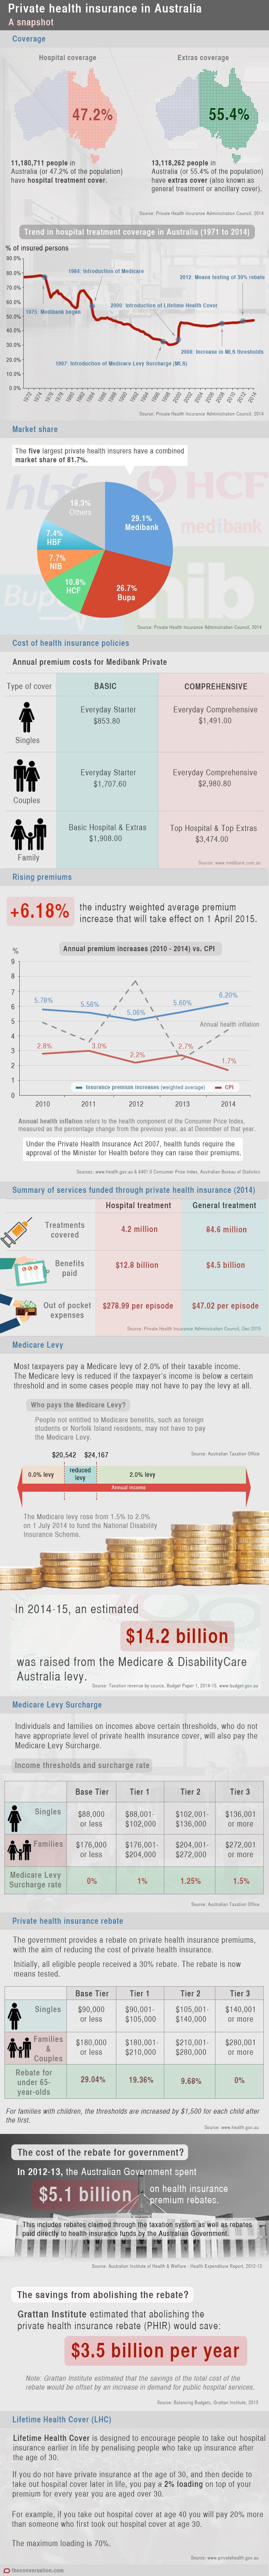 Australia Private Health Insurance Health and Fitness Infographics